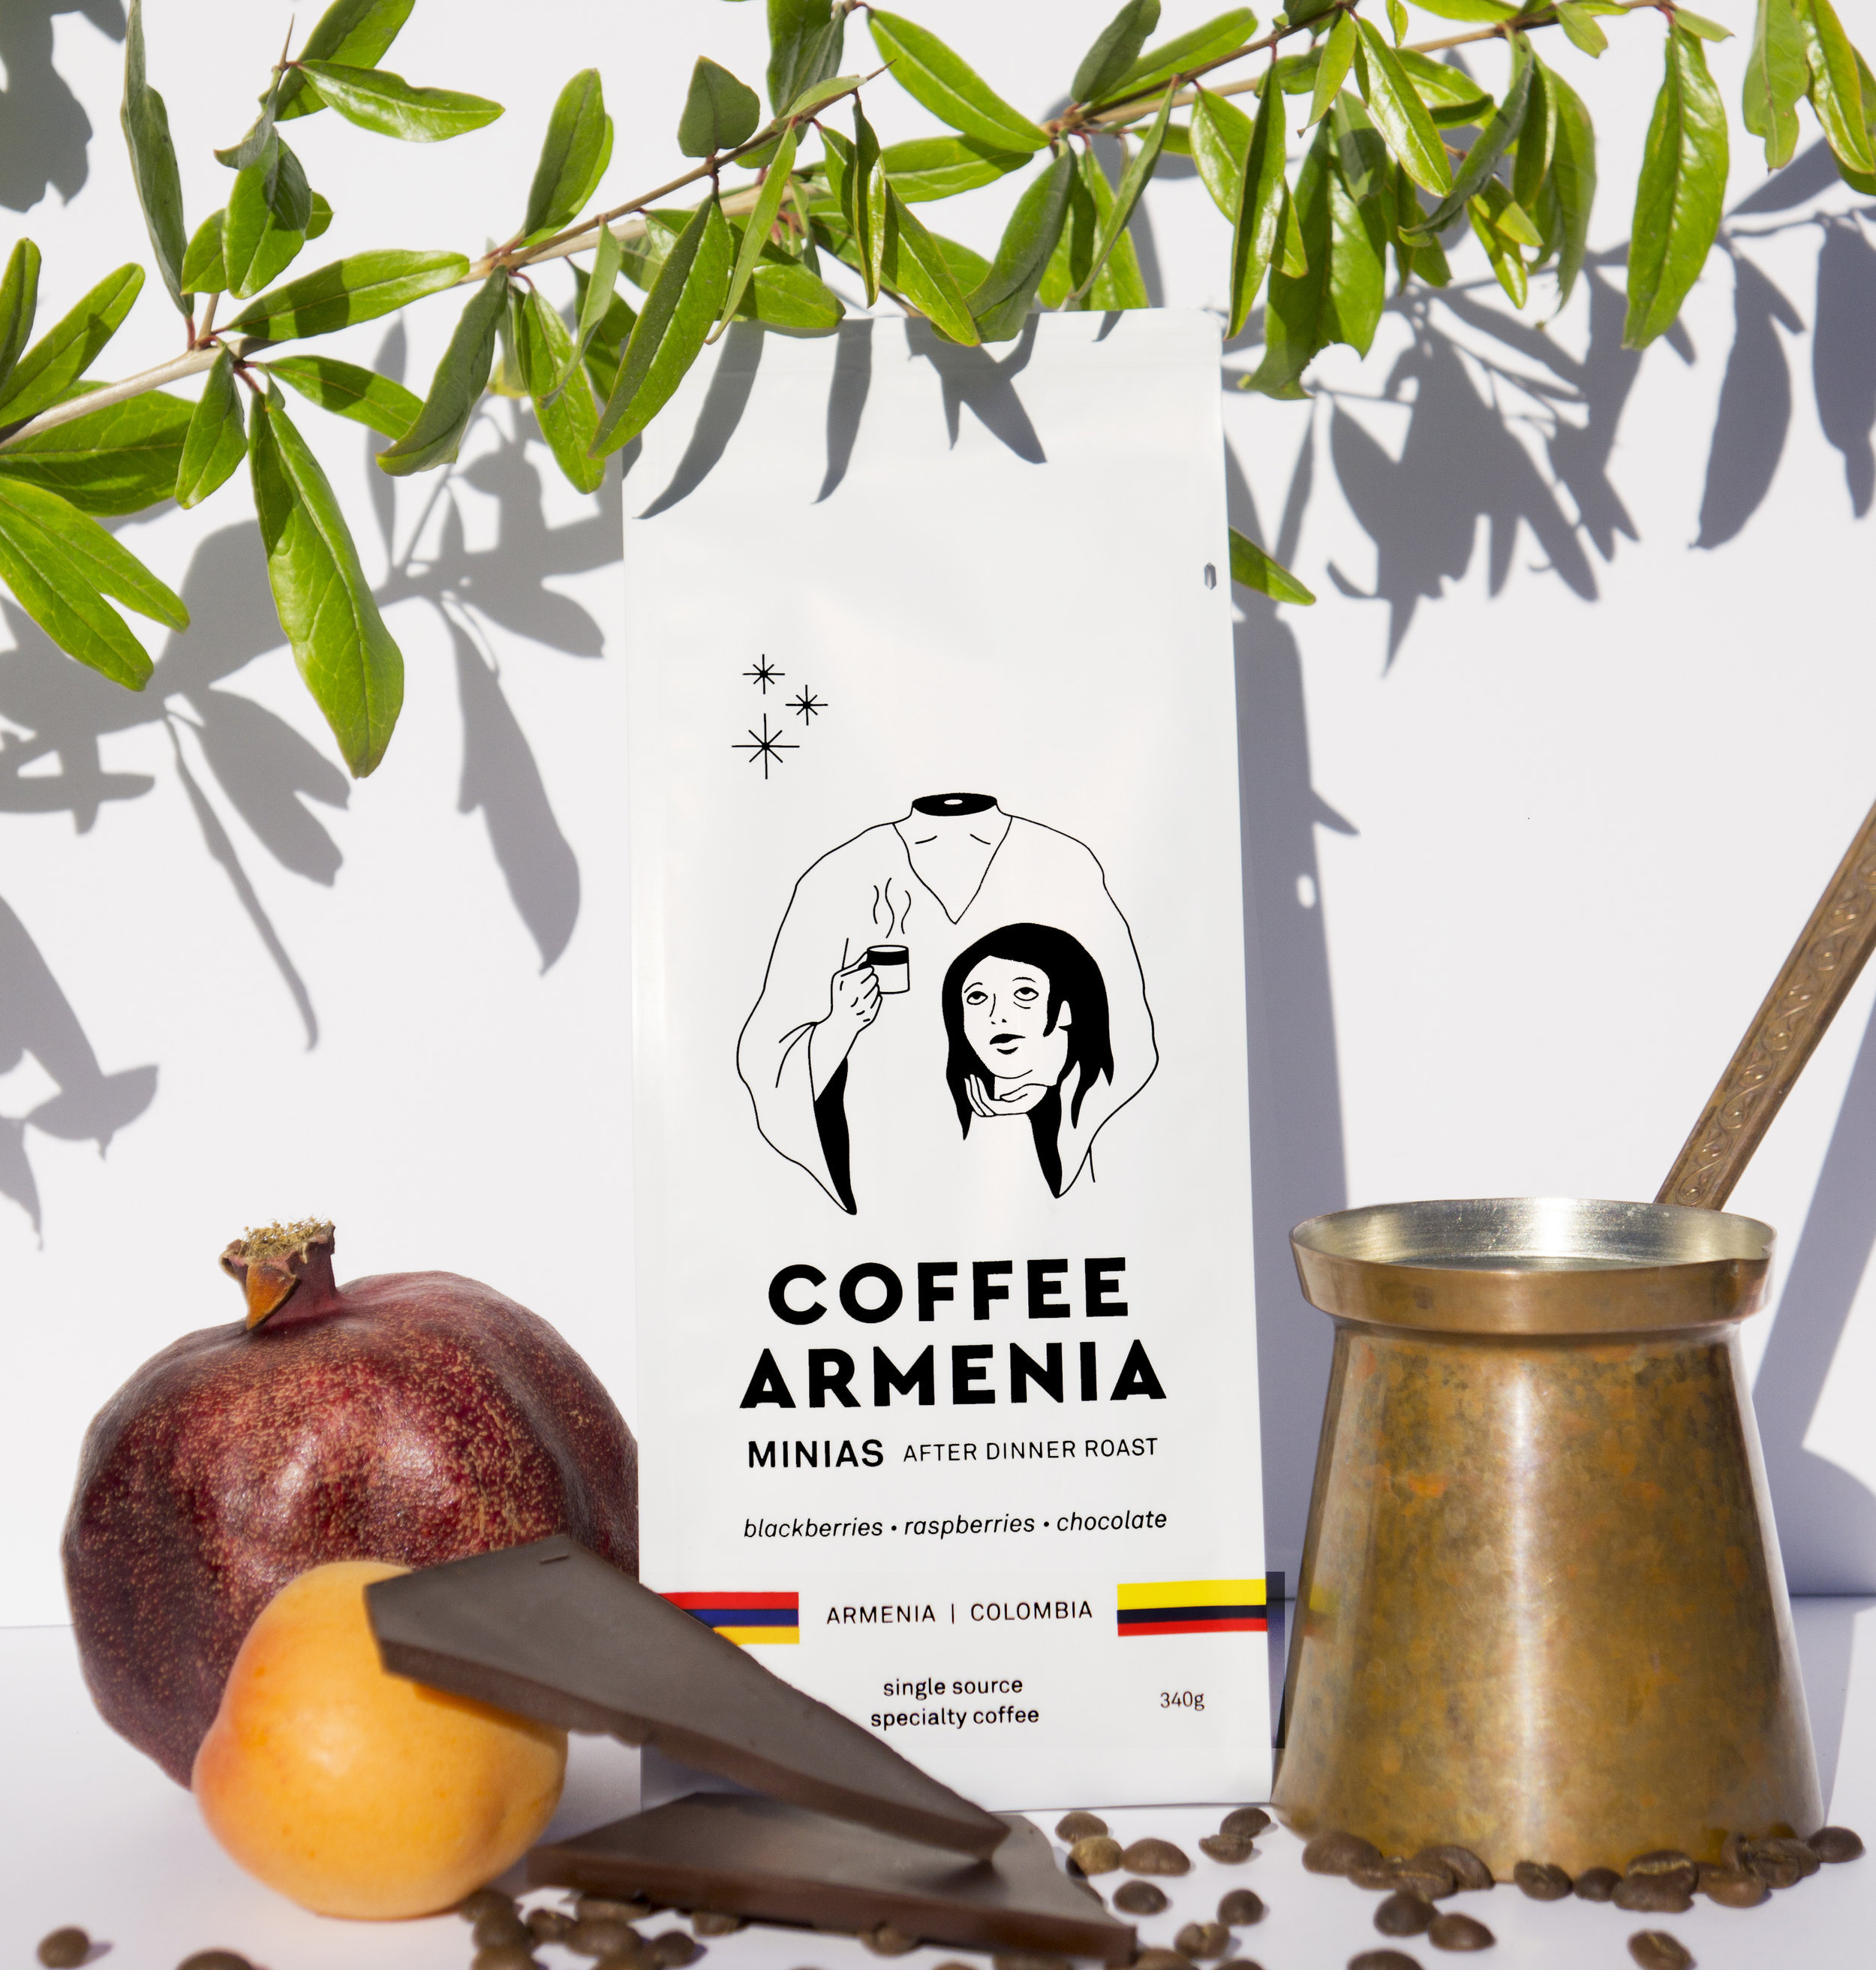 Our Minias After Dinner Roast is specifically roasted for the Armenian Coffee style. It has a Medium High Roast, with the objective to caramelize sugars working towards balancing the bright acidity and creating the foam that we all look forward to.